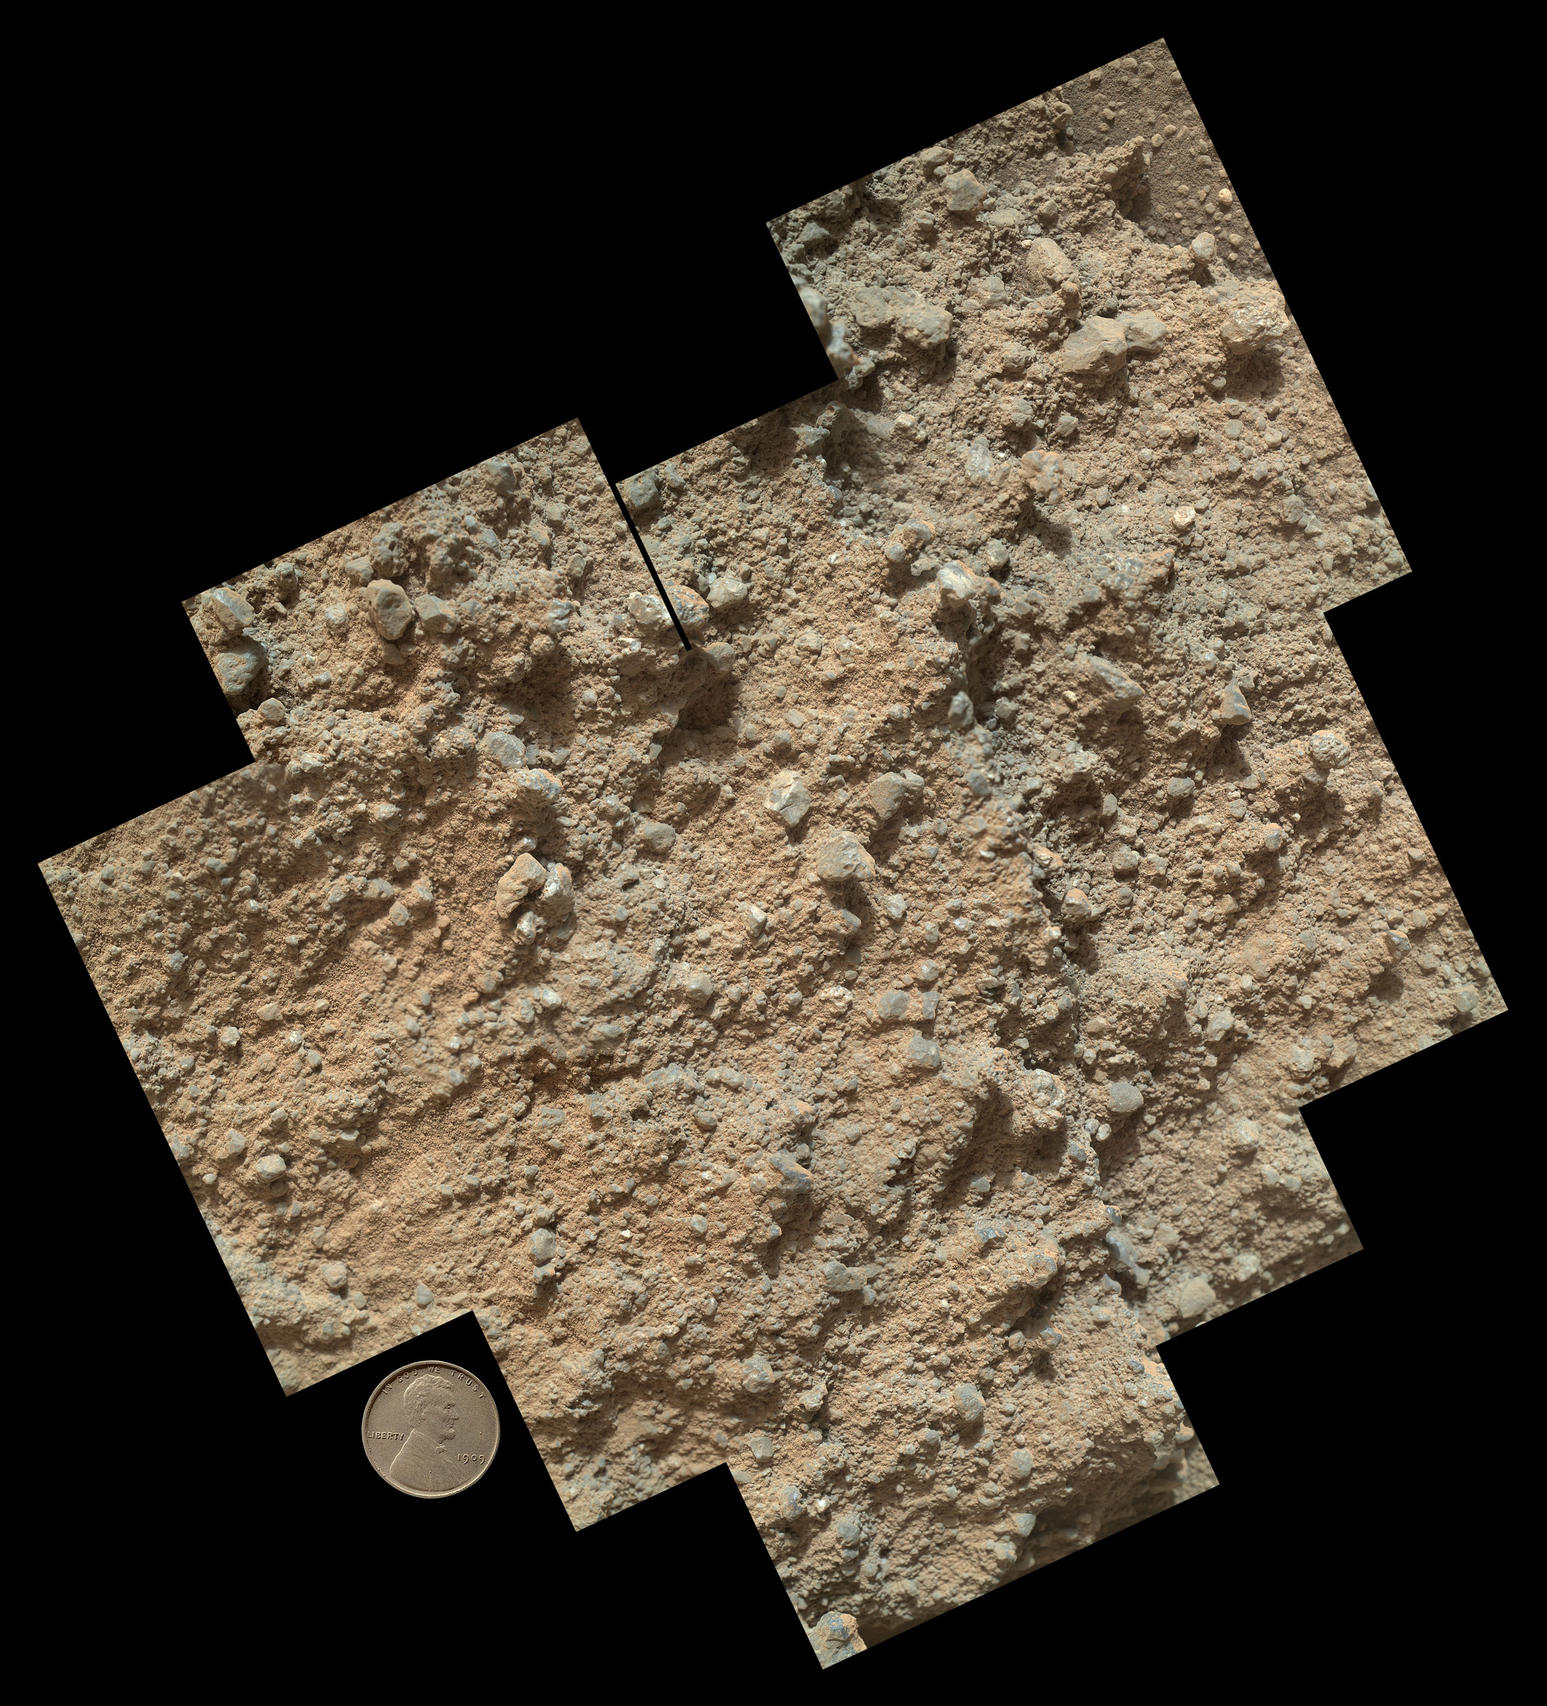 This mosaic of nine images, taken by the Mars Hand Lens Imager (MAHLI) camera on NASA's Mars rover Curiosity, shows detailed texture in a conglomerate rock bearing small pebbles and sand-size particles.